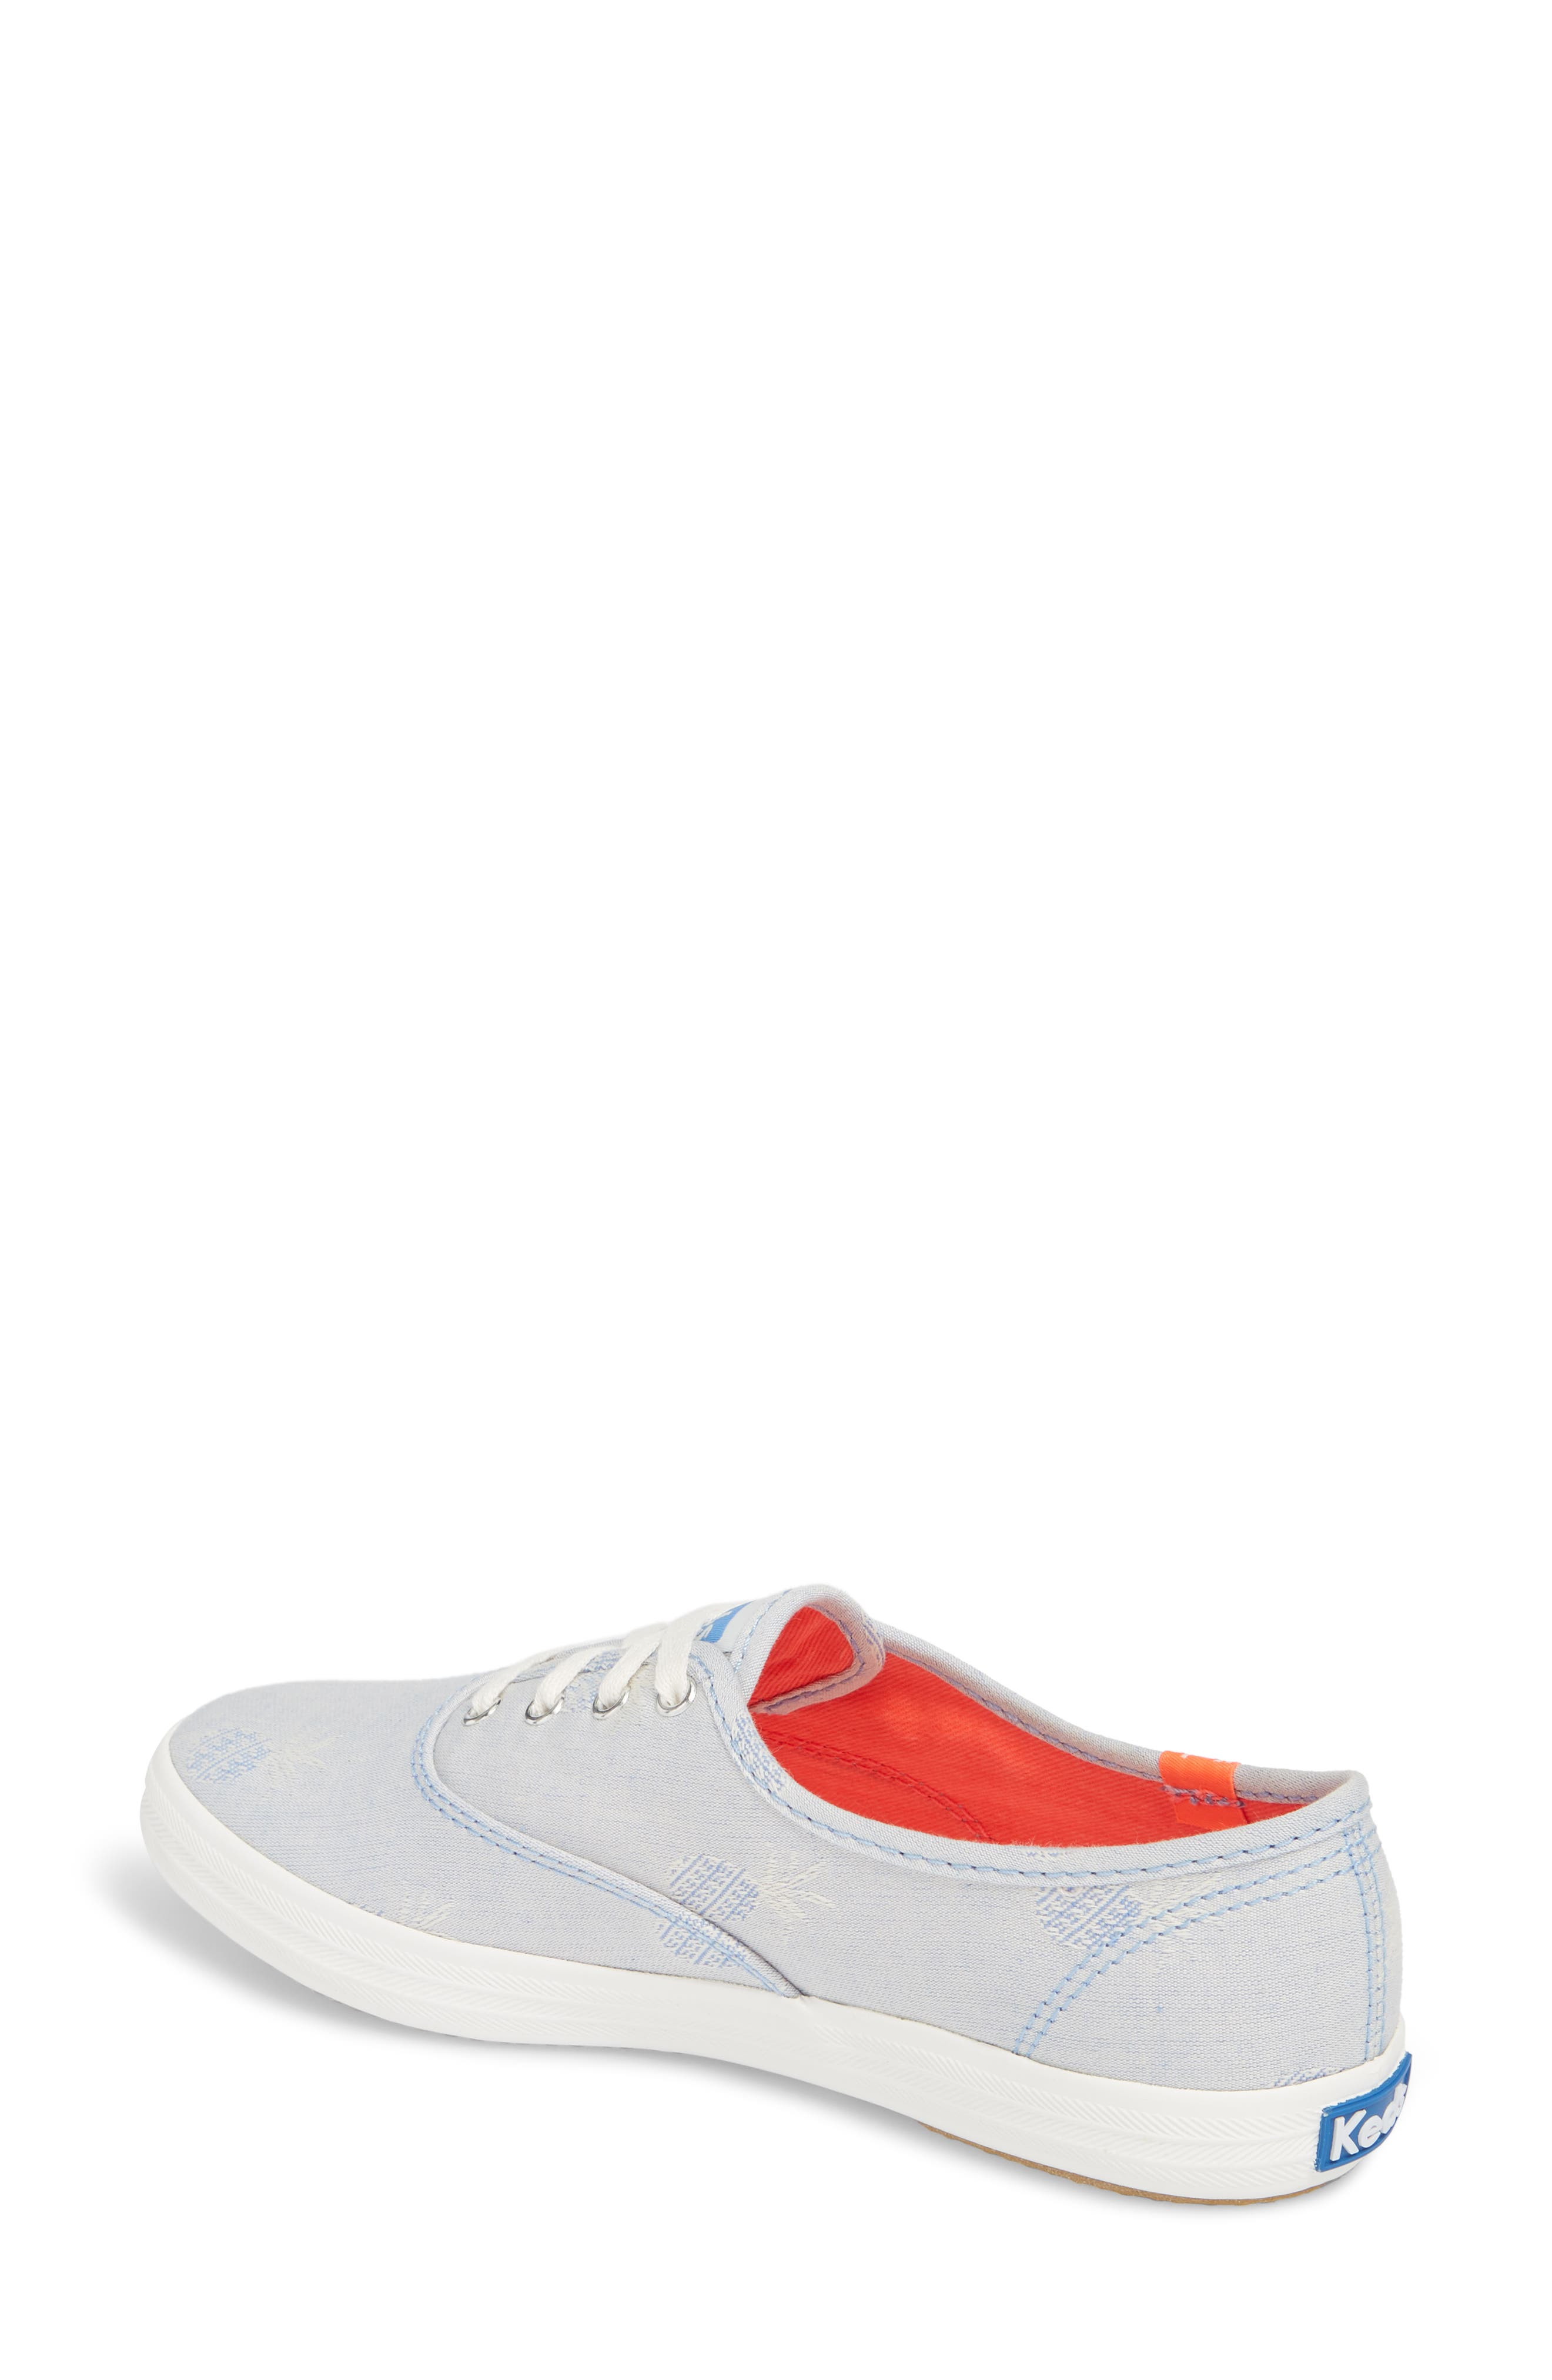 Champion Pineapple Chambray Sneaker,                             Alternate thumbnail 2, color,                             400